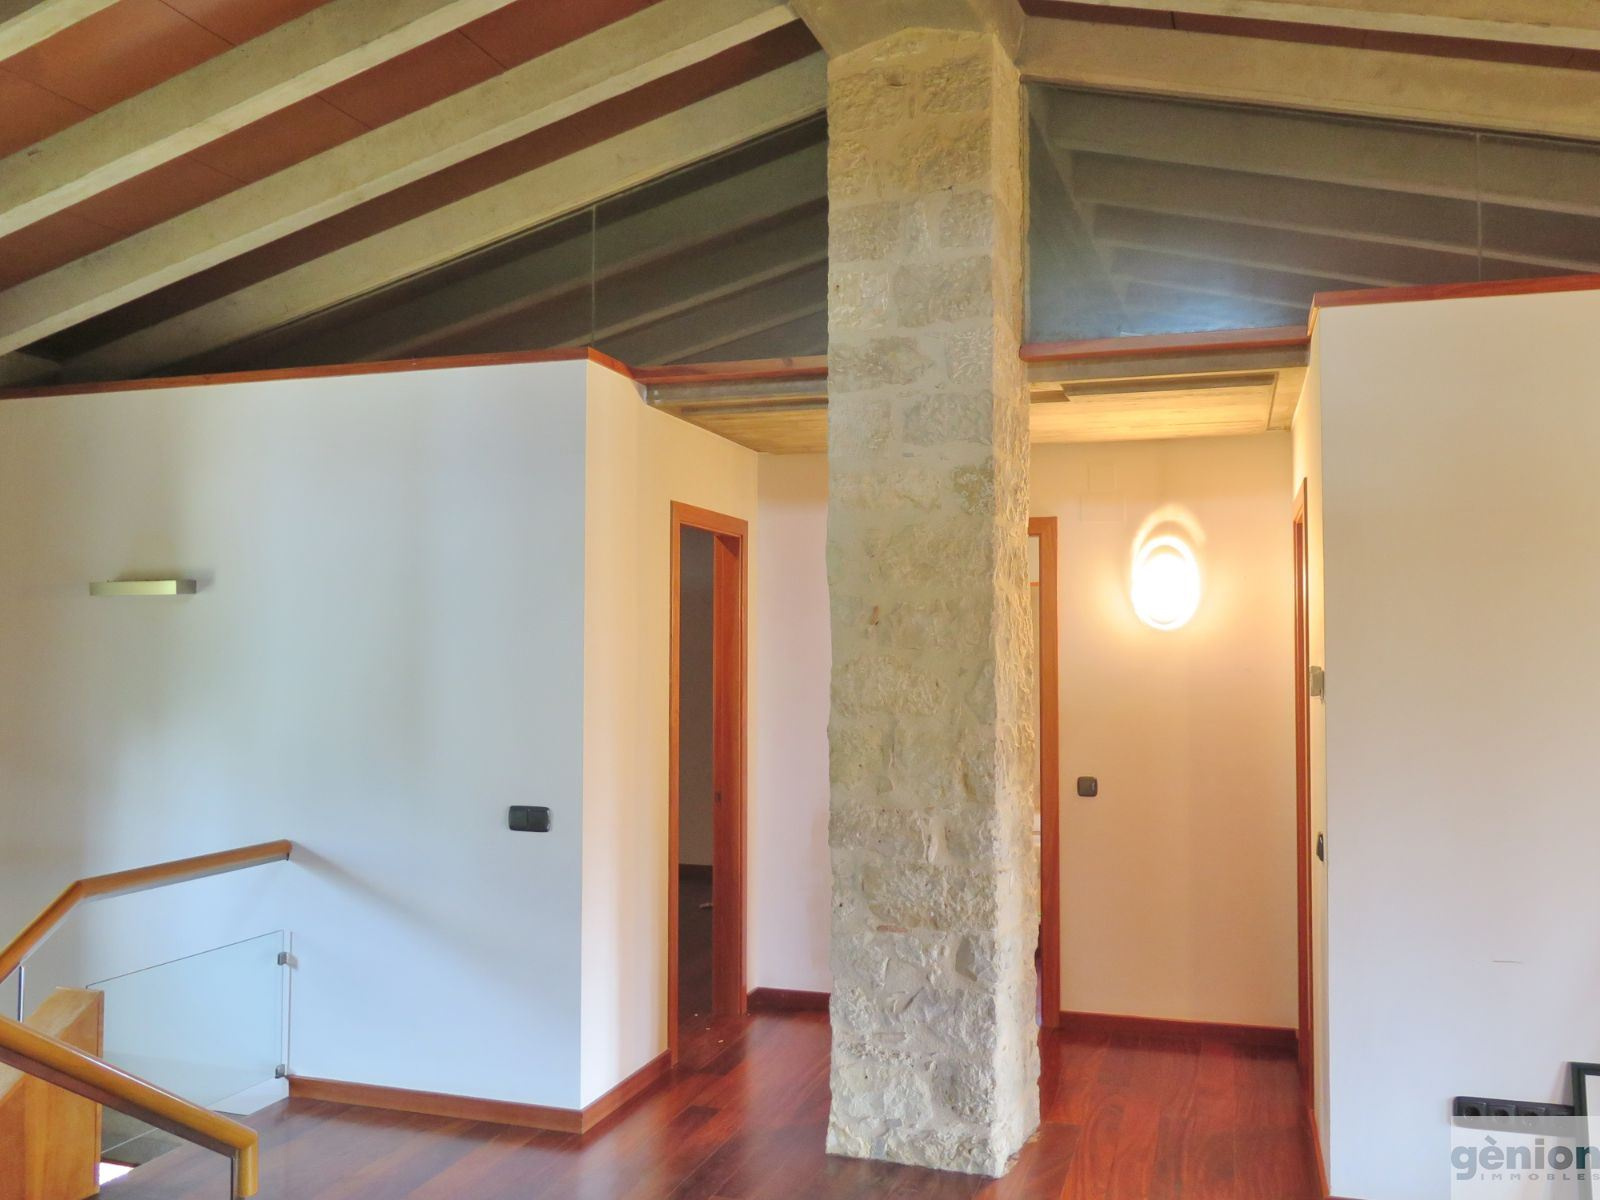 FARMHOUSE IN PORQUERES, PLA DE L'ESTANY, WITH A LIVING AREA OF 523 M² IN GROUNDS OF 3,000 M²